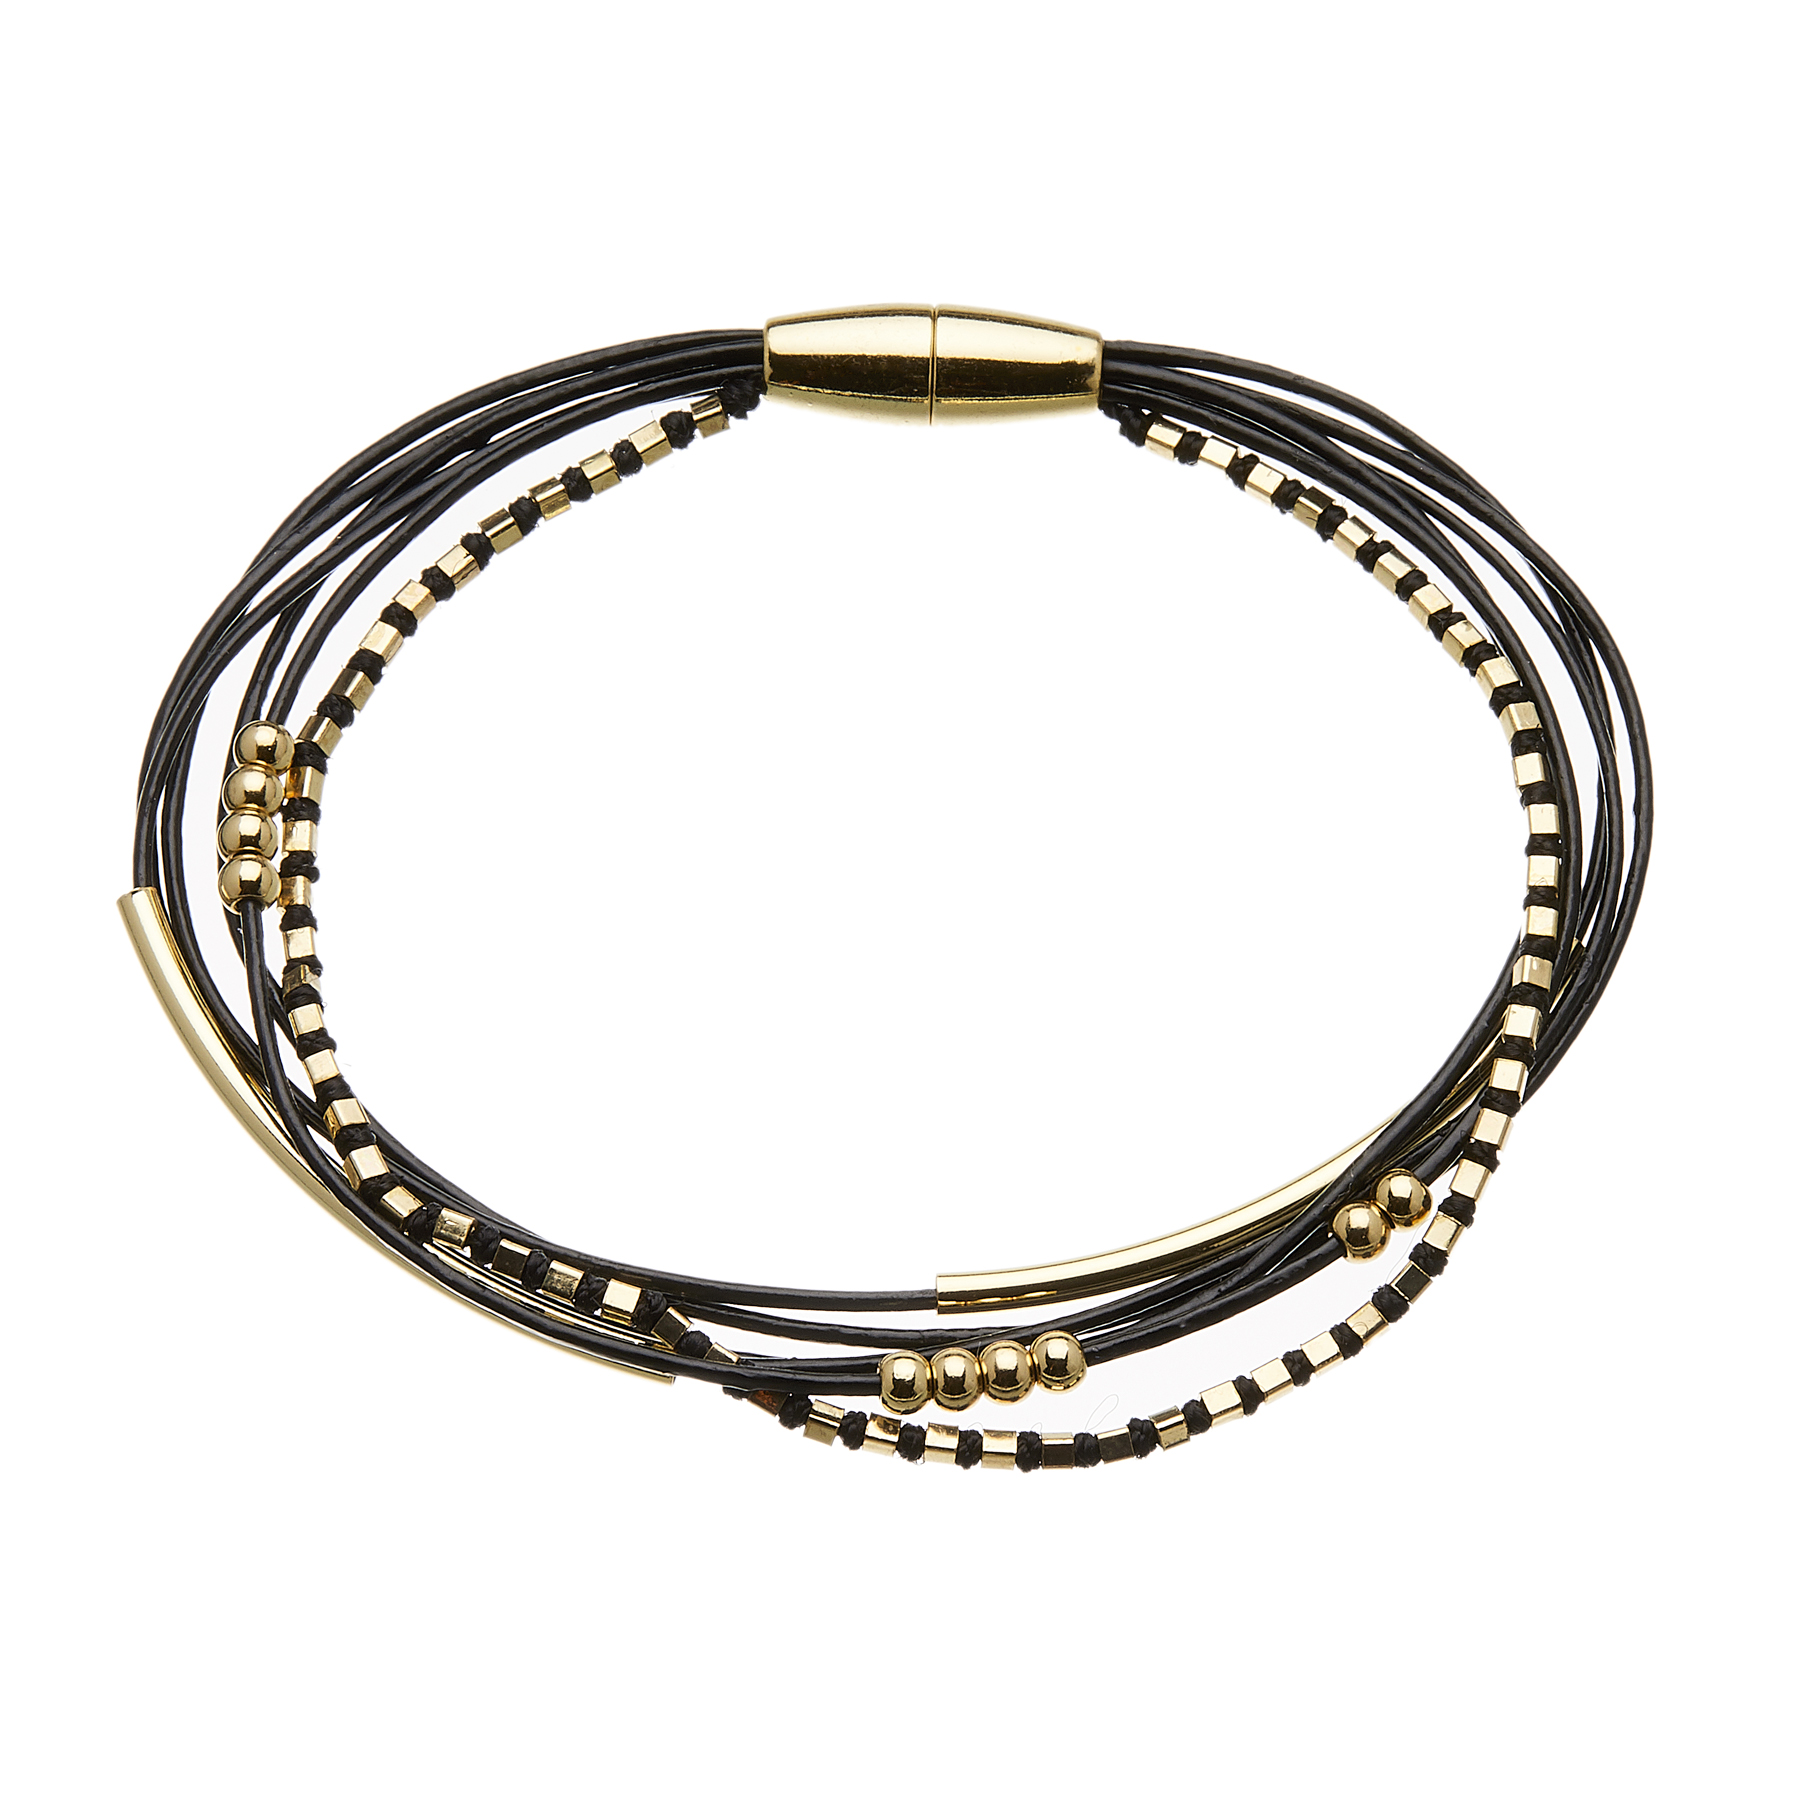 Bracelet with six black leather strands and gold beads - Riley B